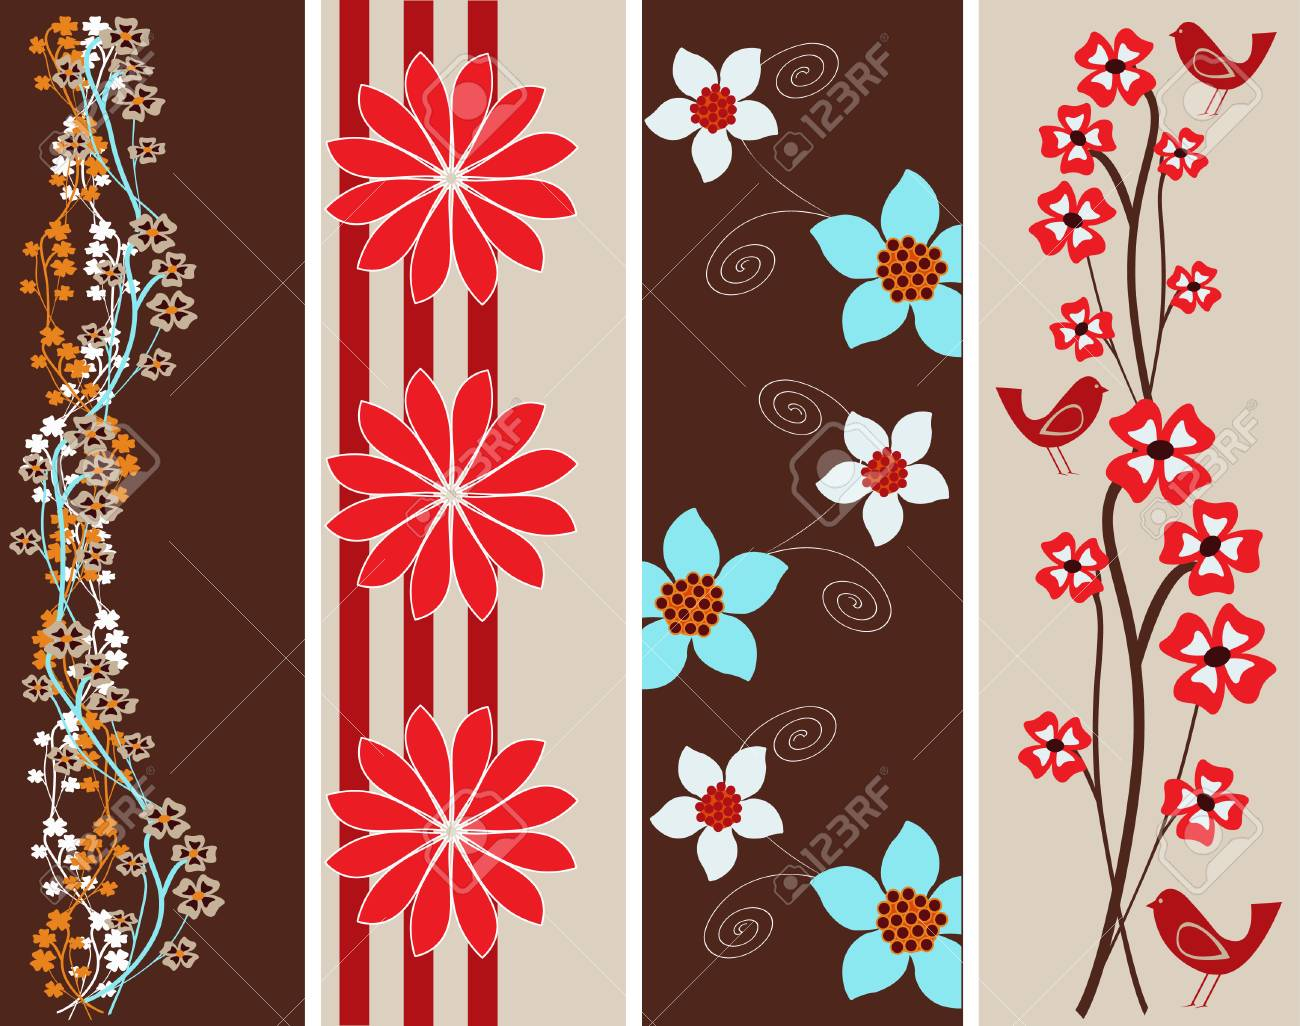 Abstract Floral web Banner Templates Stock Vector - 4510708